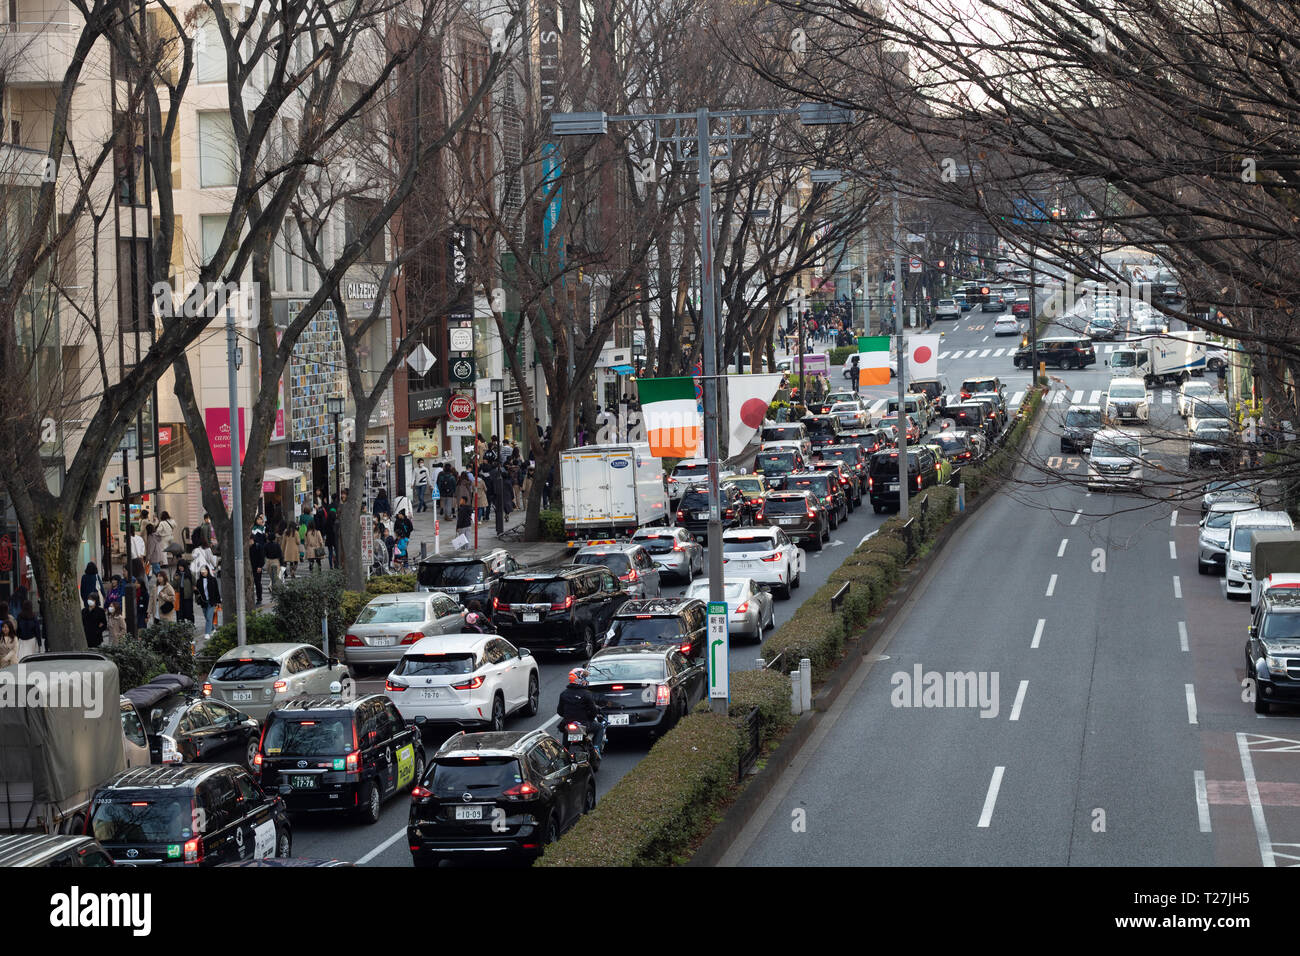 To say that streets in the Harjuku area were way overcrowded is an understatement. It is nothing like anything I have ever experienced before! Stock Photo